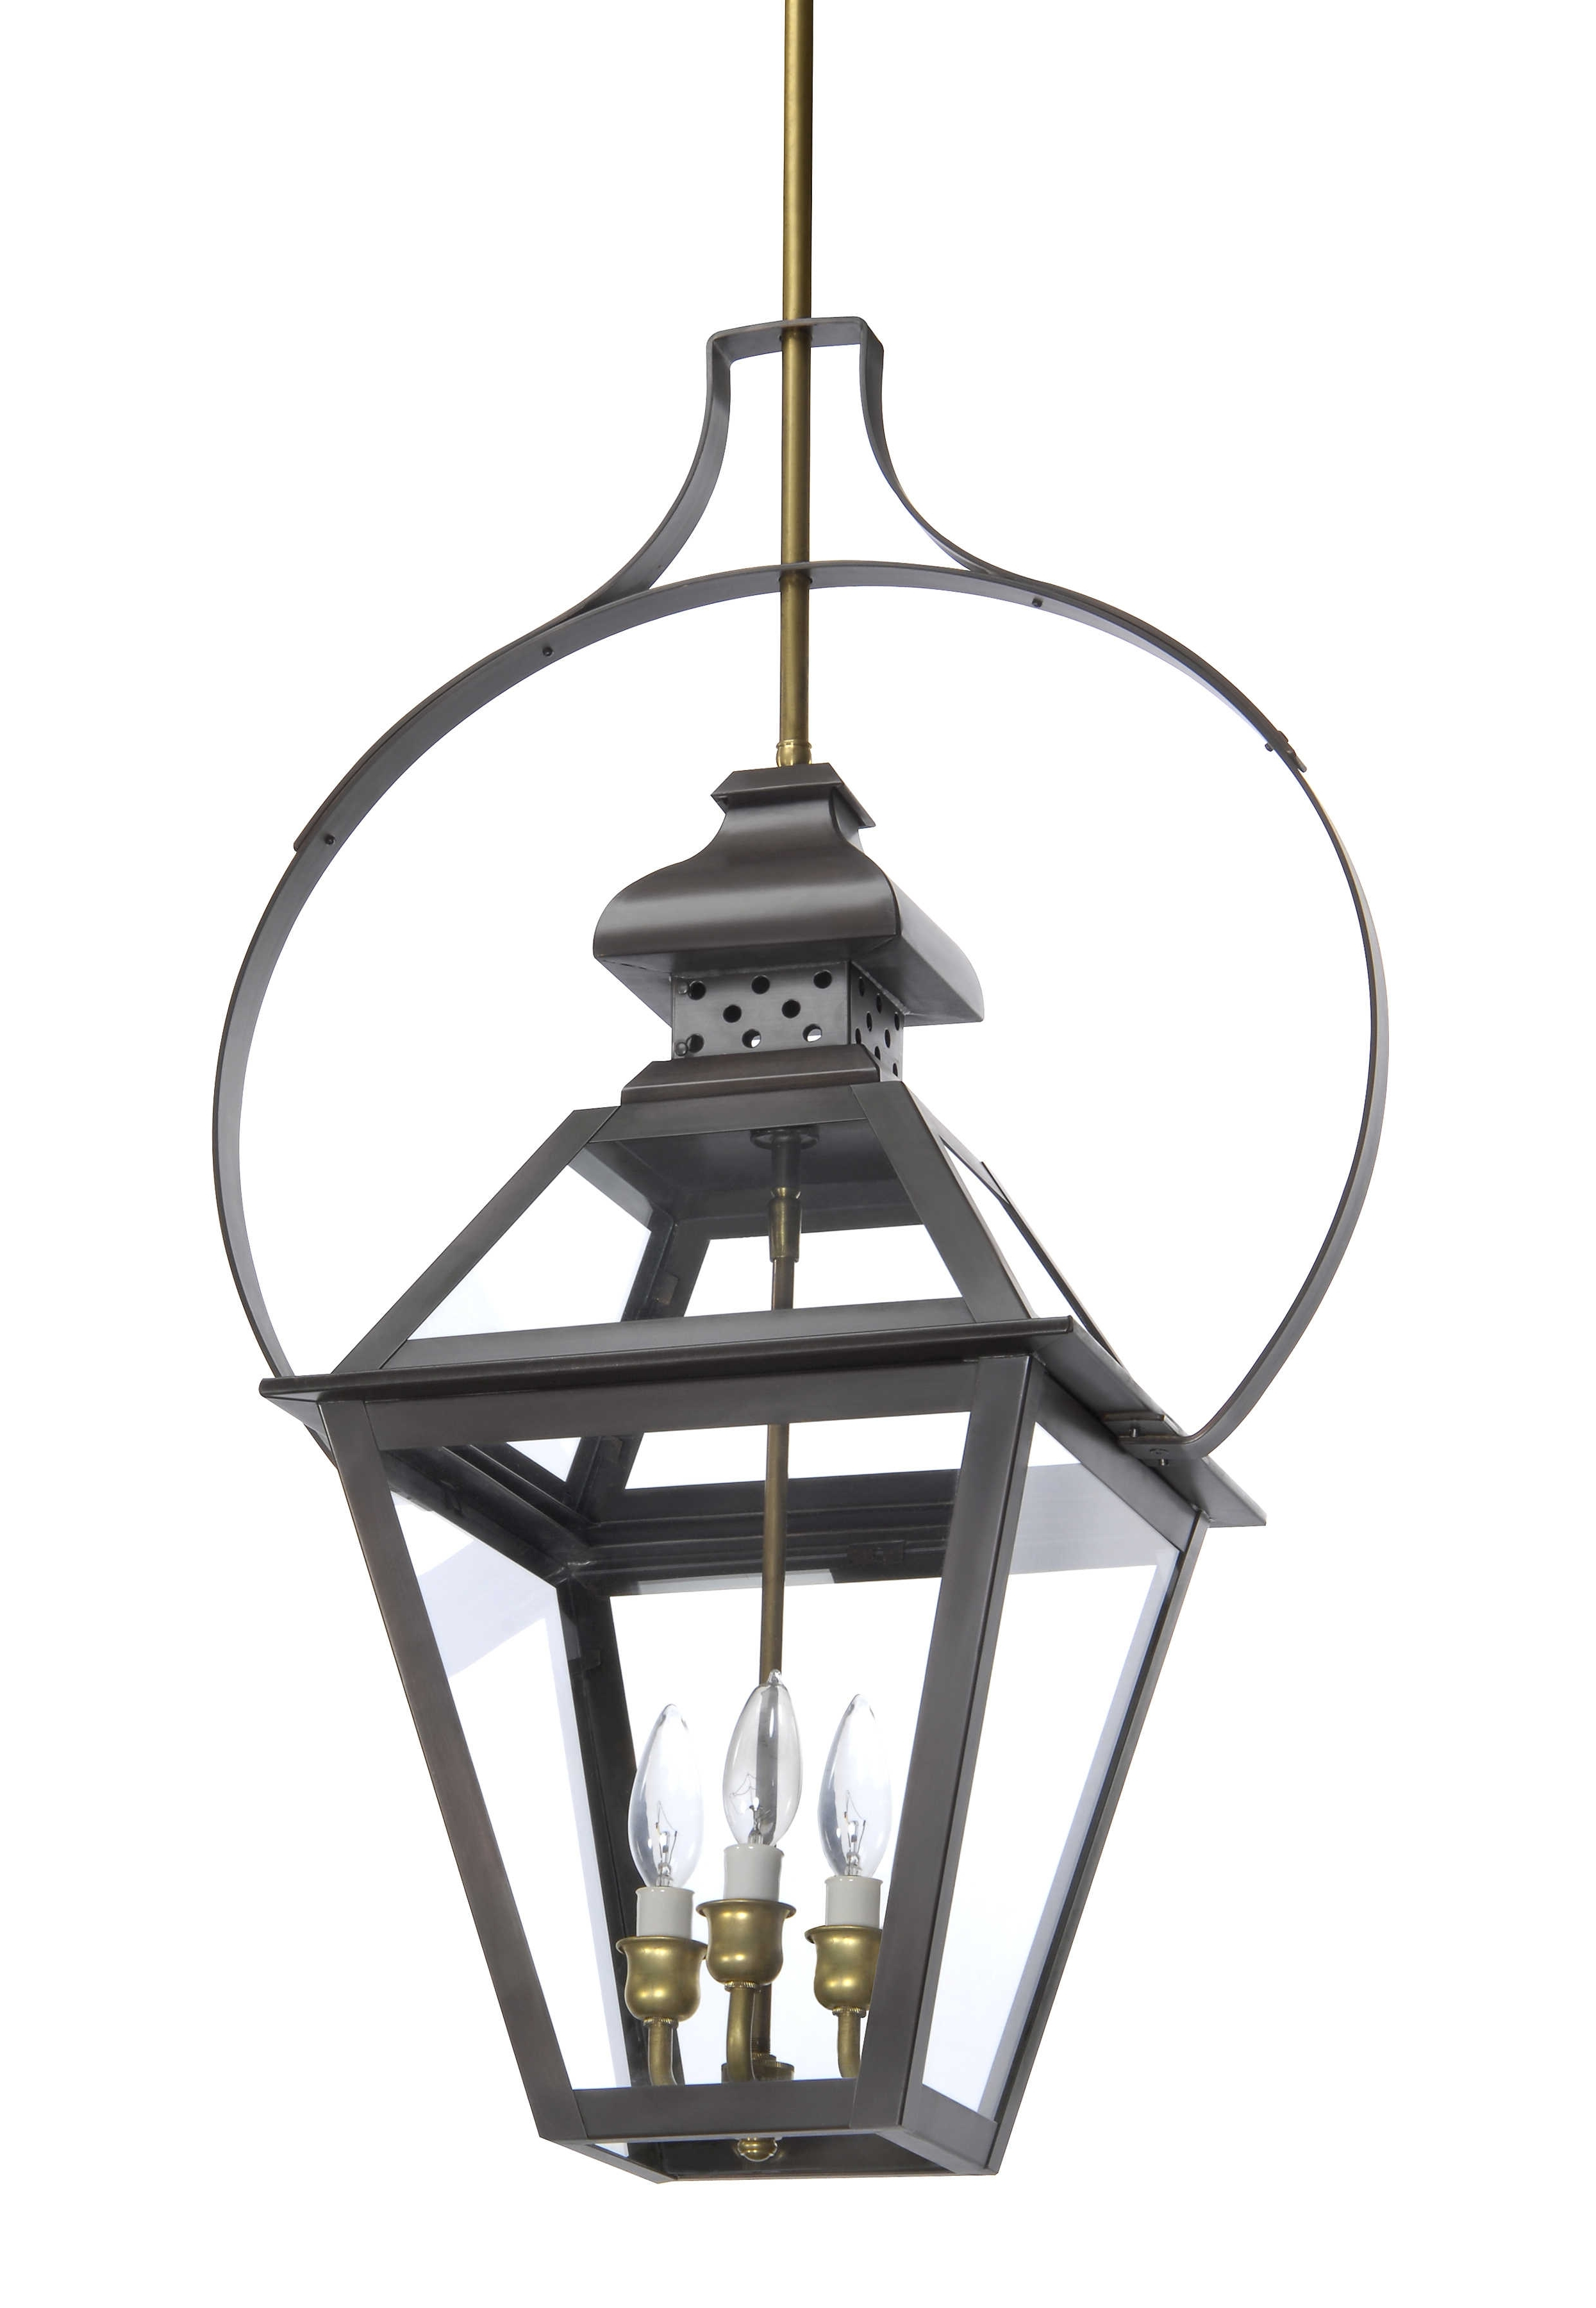 2019 Outdoor Hanging Electric Lanterns Inside Tradd Street Collection (View 3 of 20)